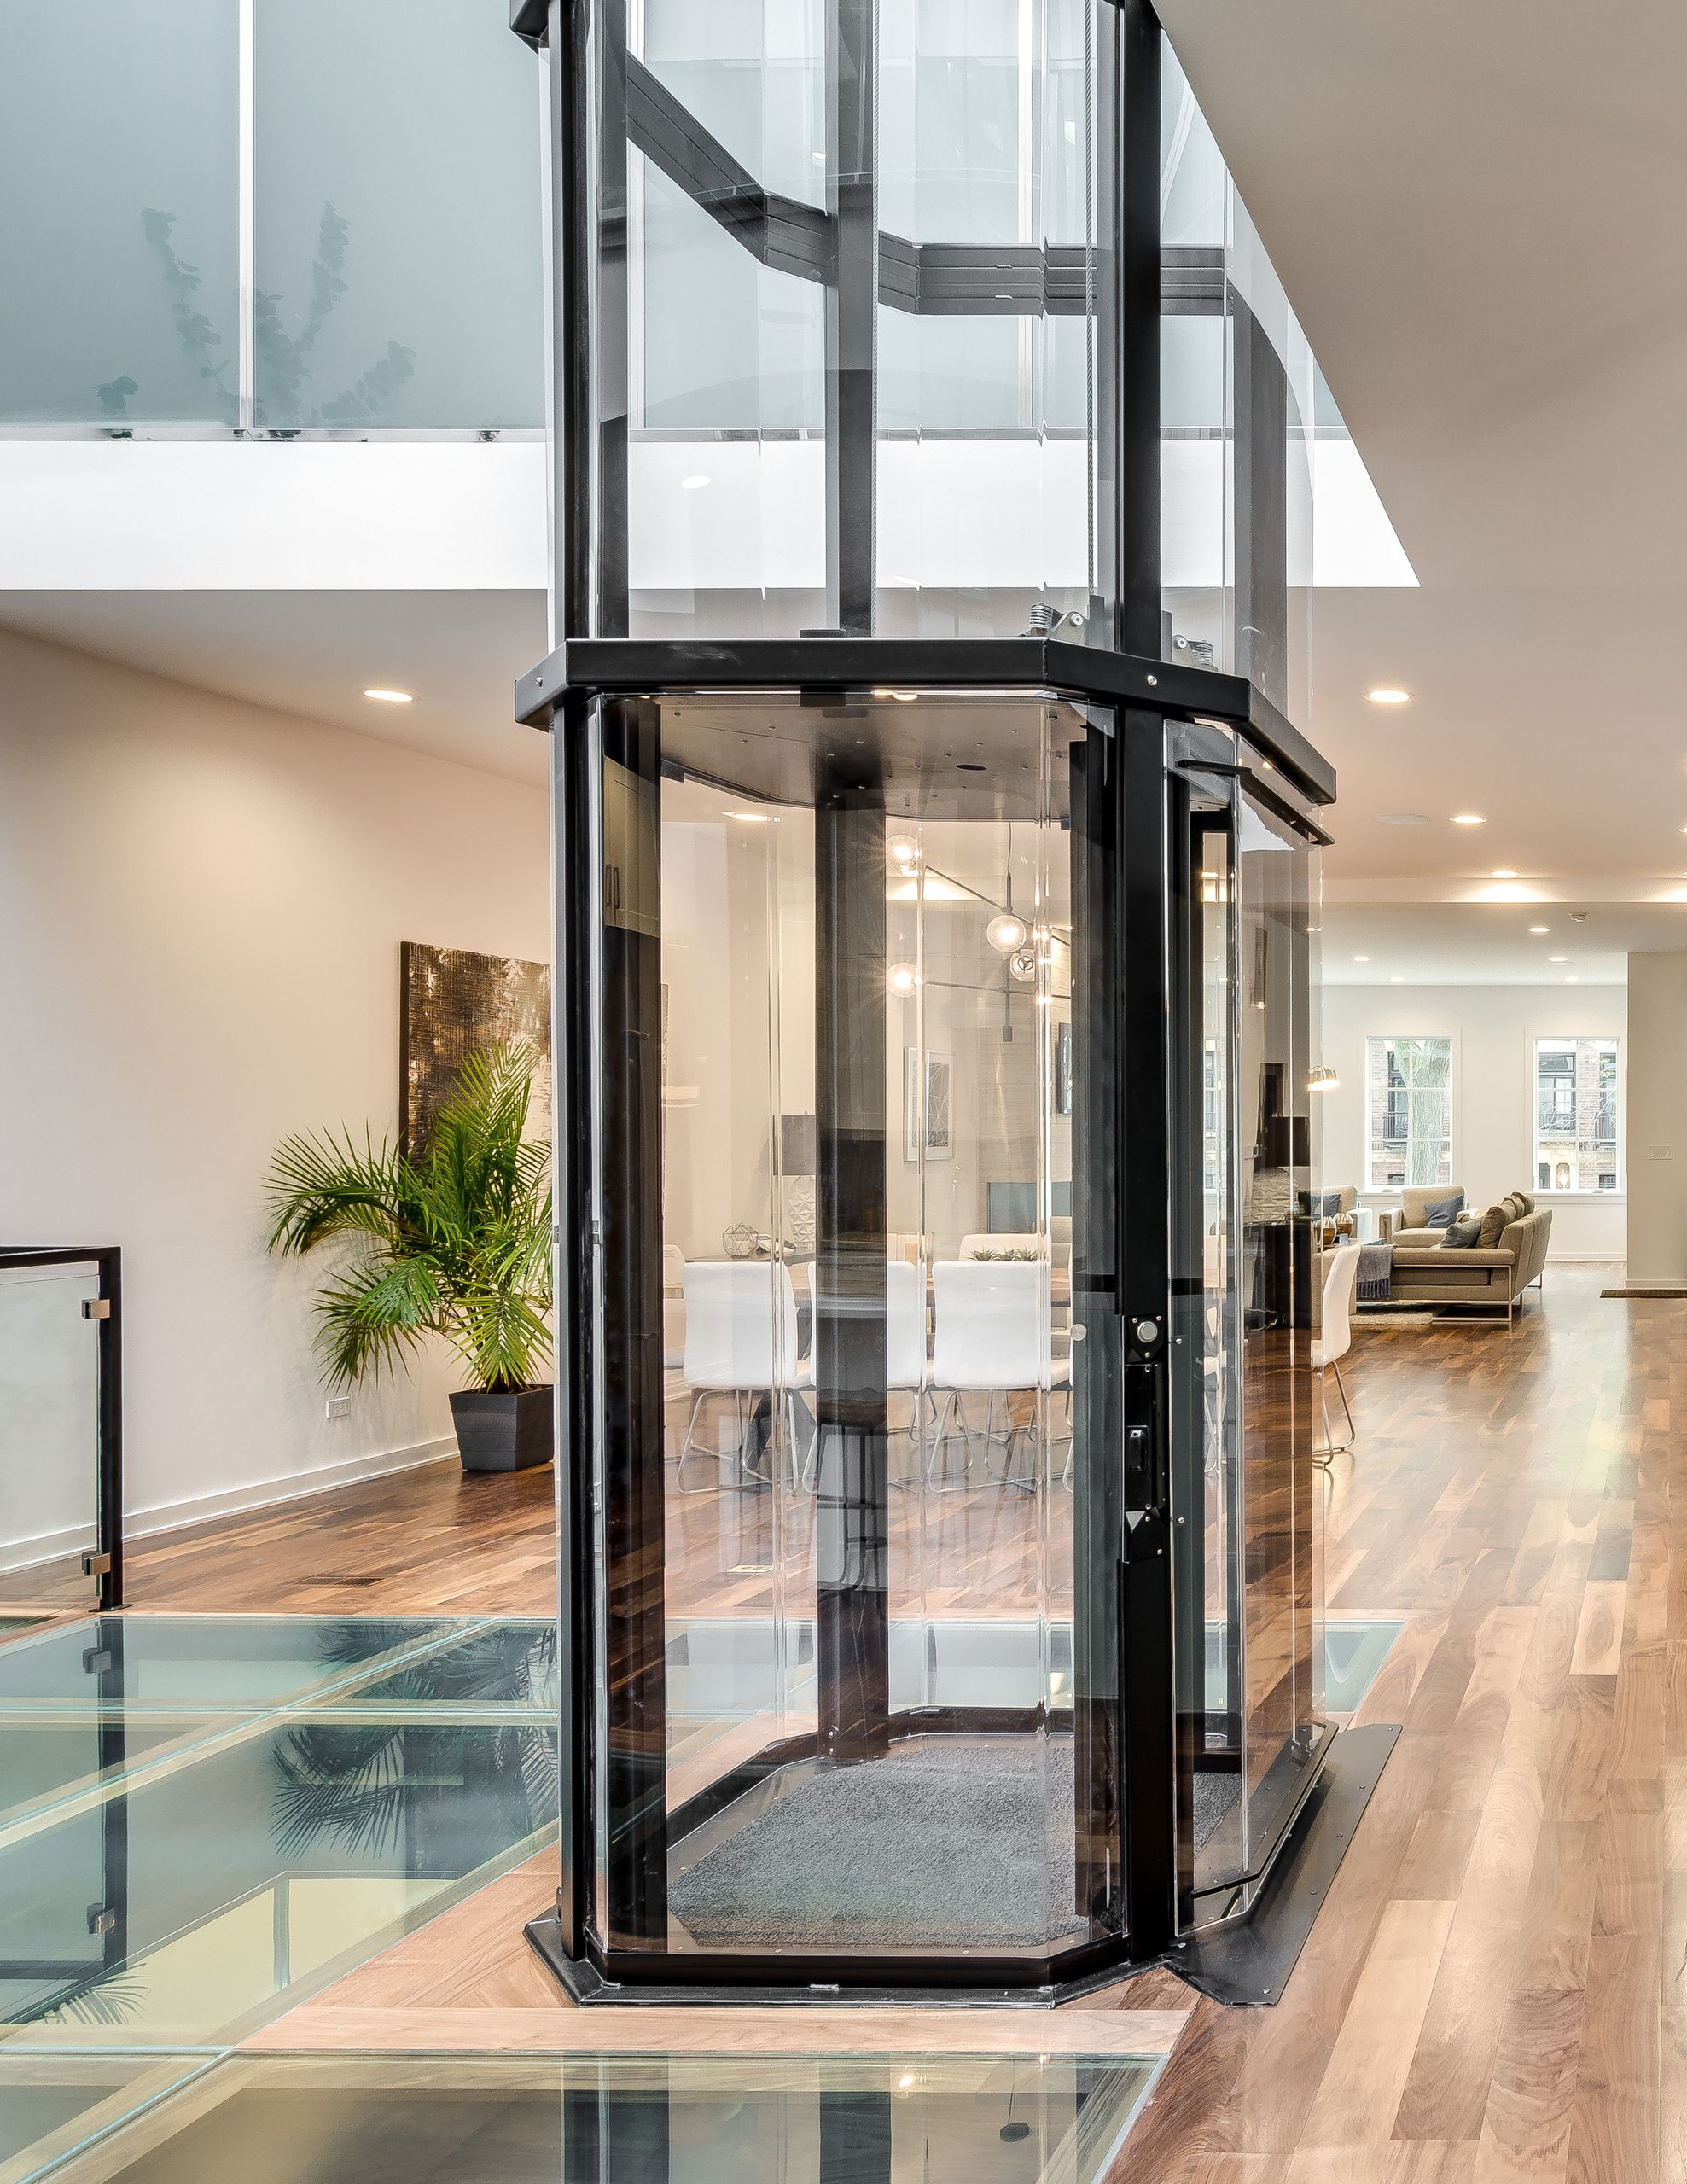 Narrow Row Home With Vuelift Octagonal Cab View Glass Elevator House Elevator Elevator Ideas Elev House Elevation Elevator Interior Elevator Design